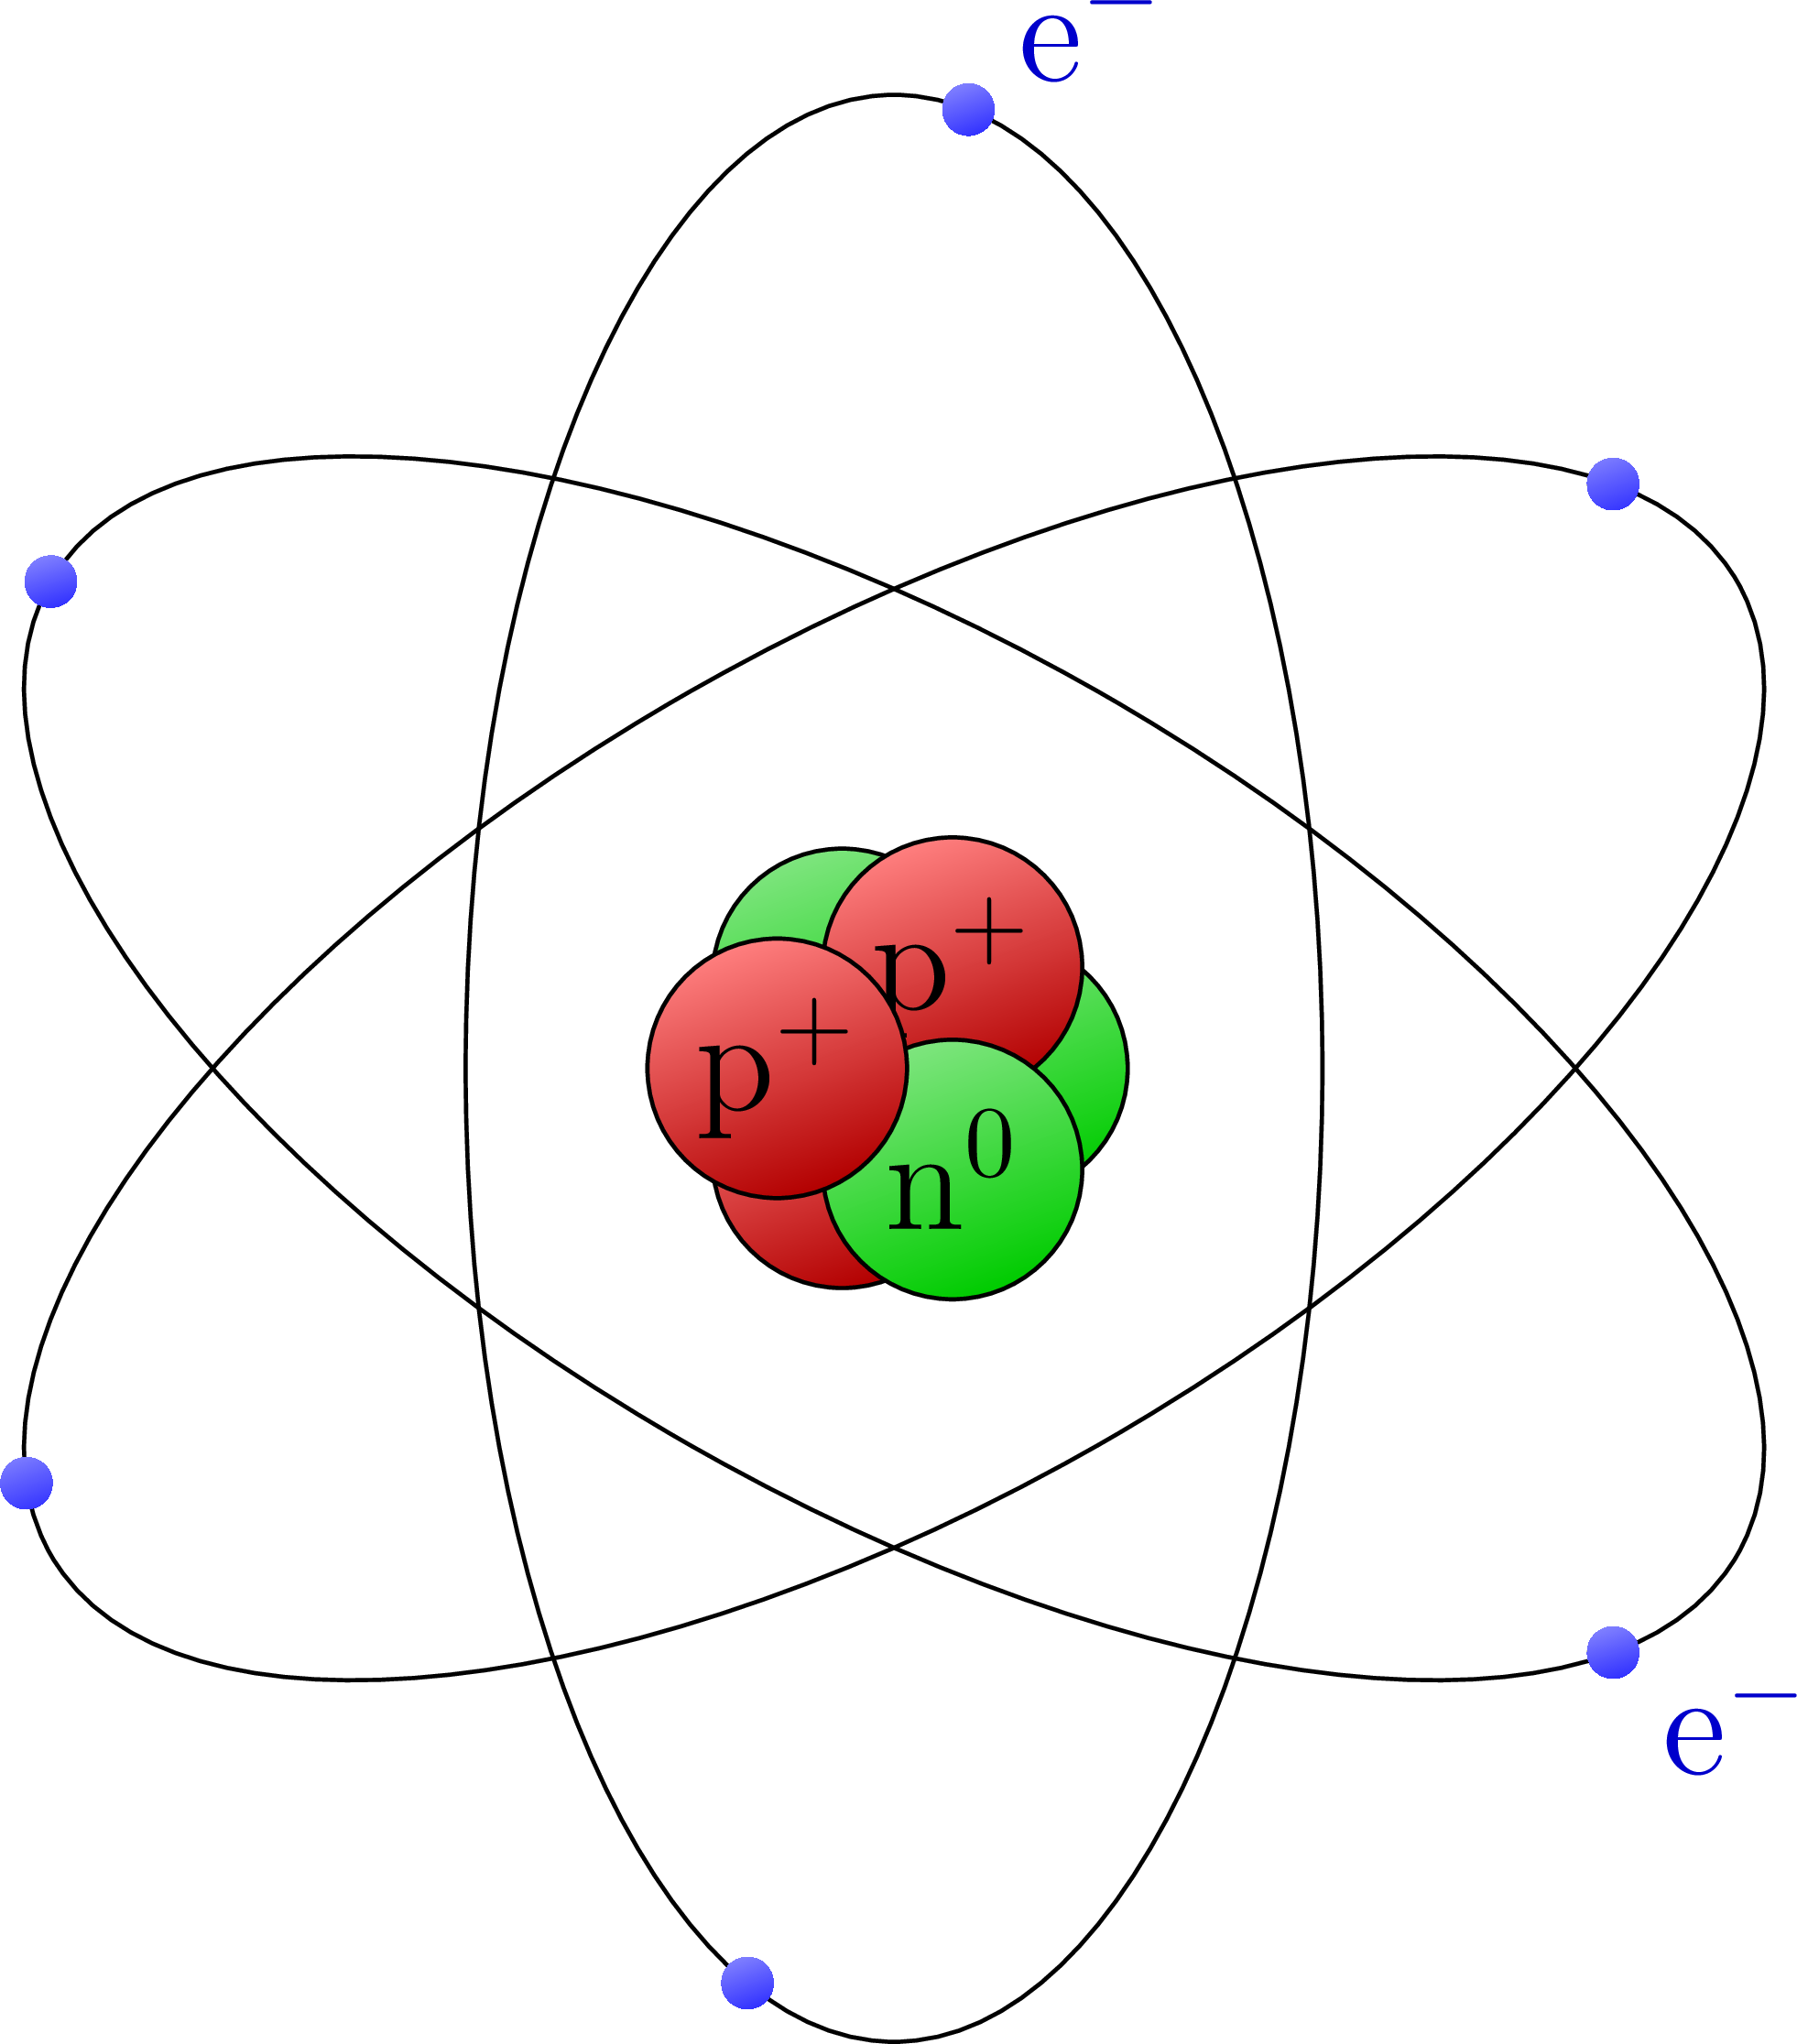 charged_particles-003.png